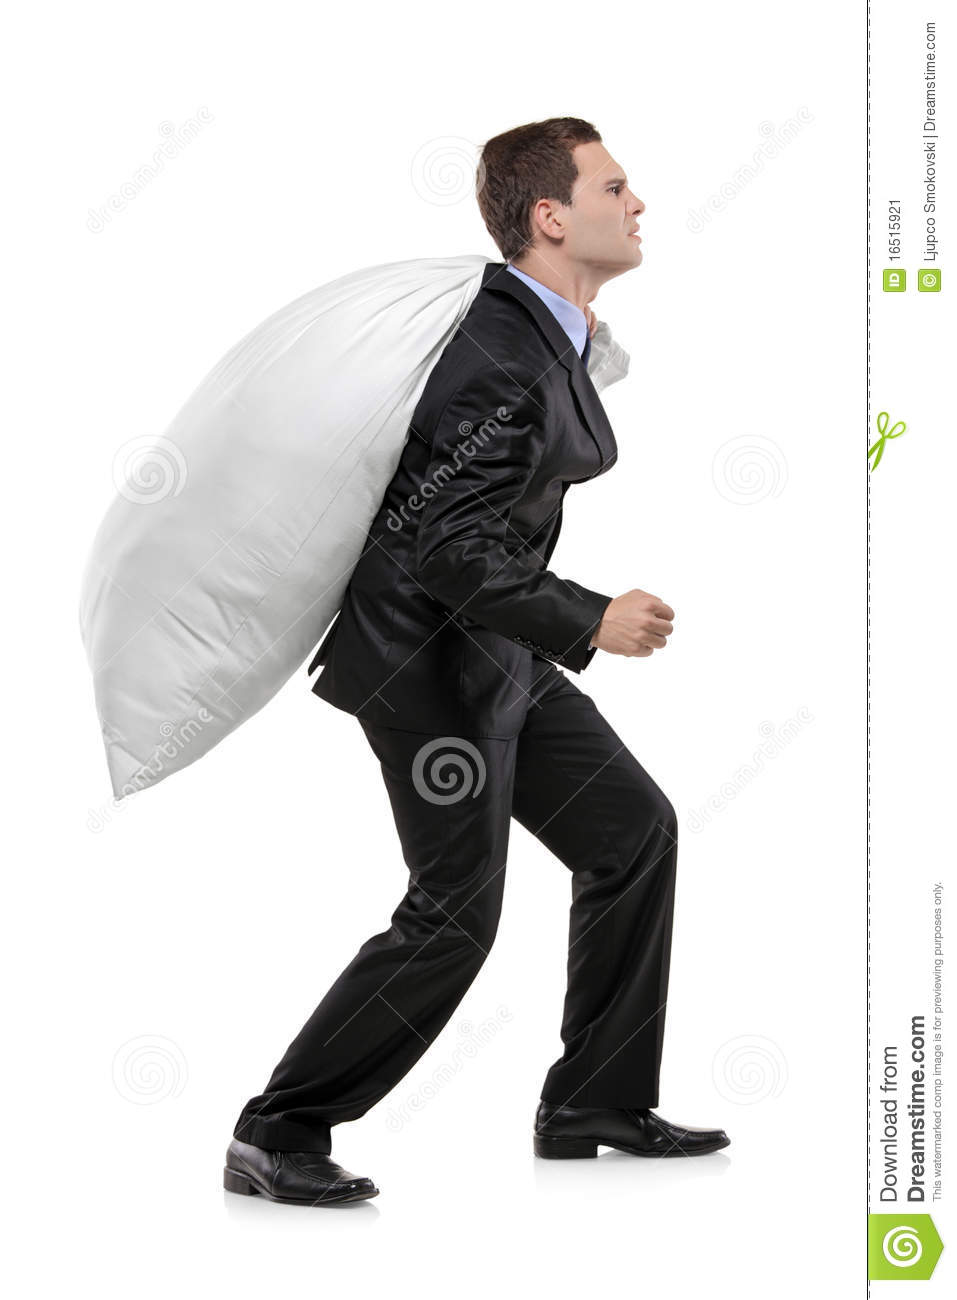 Full Length Portrait Of A Man Carrying A Money Bag Stock Image ...